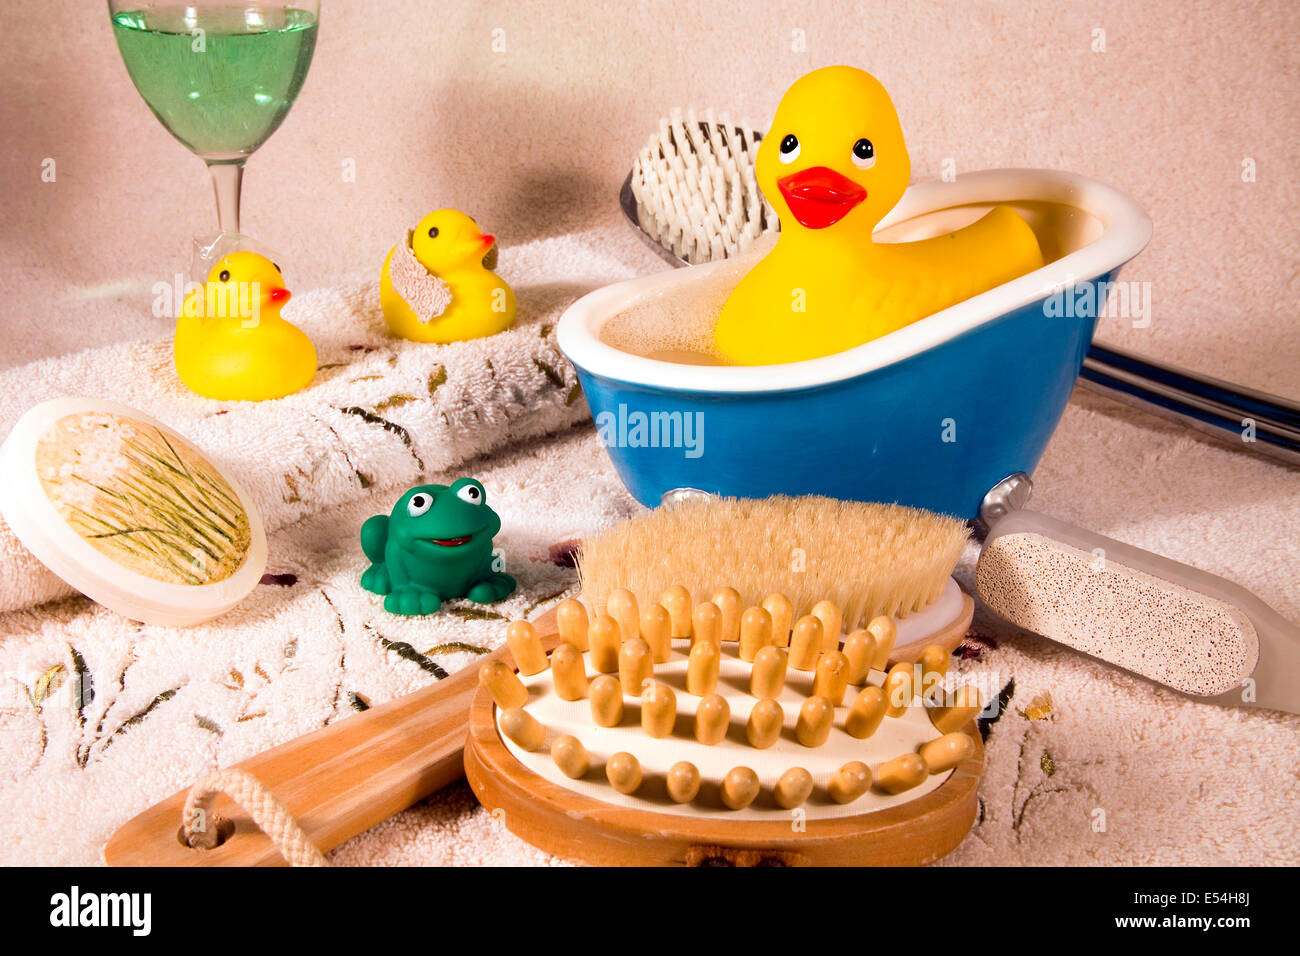 Spa setting with rubber duckies in bath tub, in shower cap, with ...